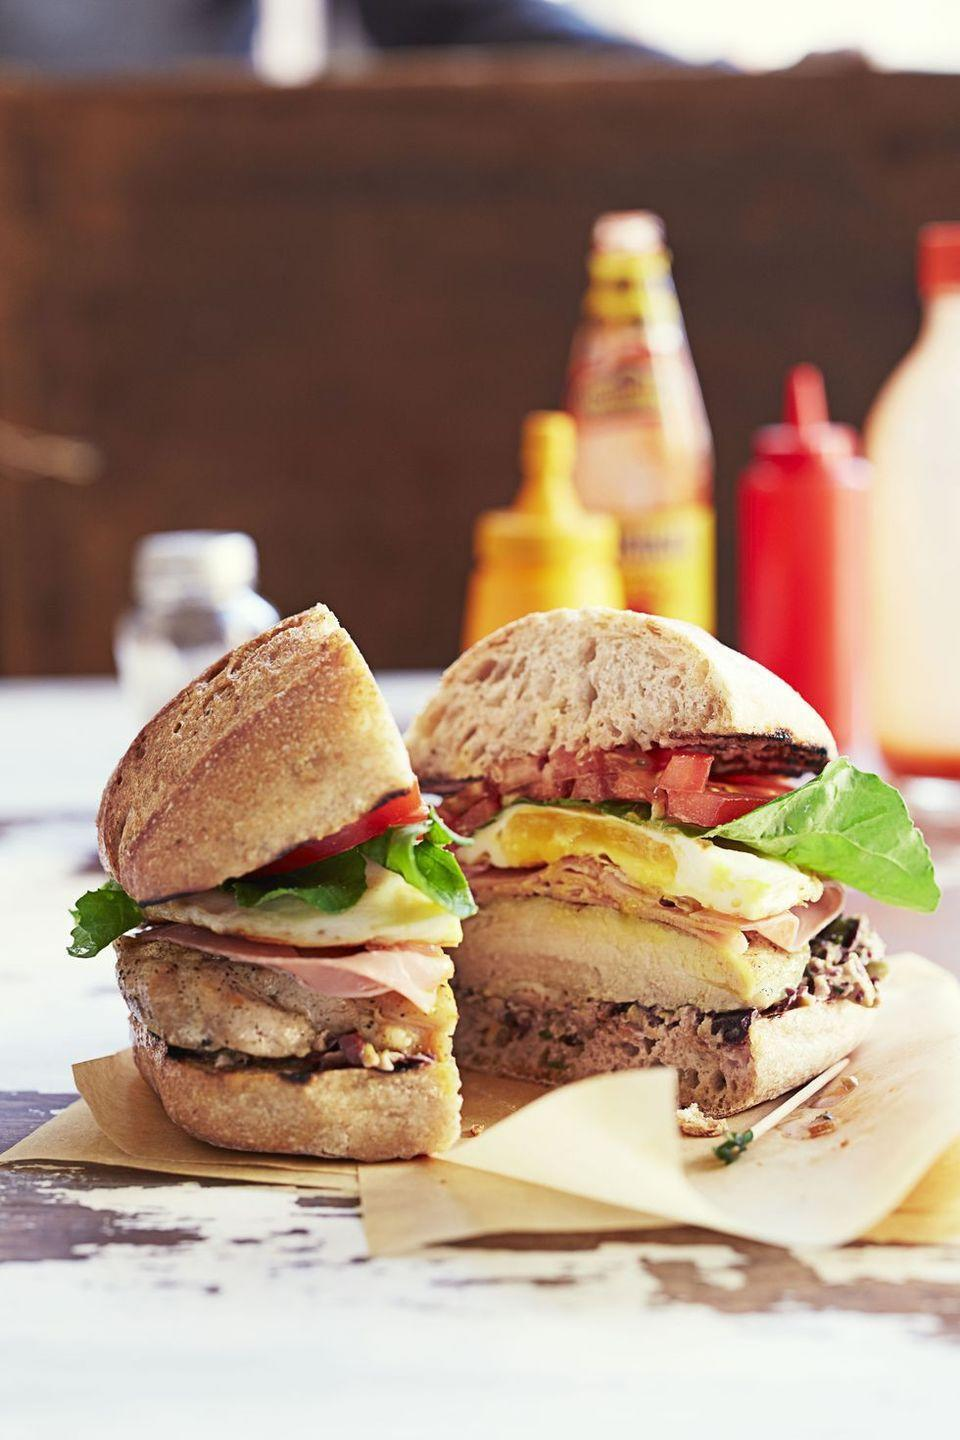 """<p>No brunch menu is complete without a sandwich or two, and this chicken and egg option is a real standout. </p><p><em><em><a href=""""https://www.goodhousekeeping.com/food-recipes/a16992/chicken-chivito-sandwich-recipe-ghk0315/"""" rel=""""nofollow noopener"""" target=""""_blank"""" data-ylk=""""slk:Get the recipe for Chicken Chivito Sandwich »"""" class=""""link rapid-noclick-resp"""">Get the recipe for Chicken Chivito Sandwich »</a></em></em></p>"""